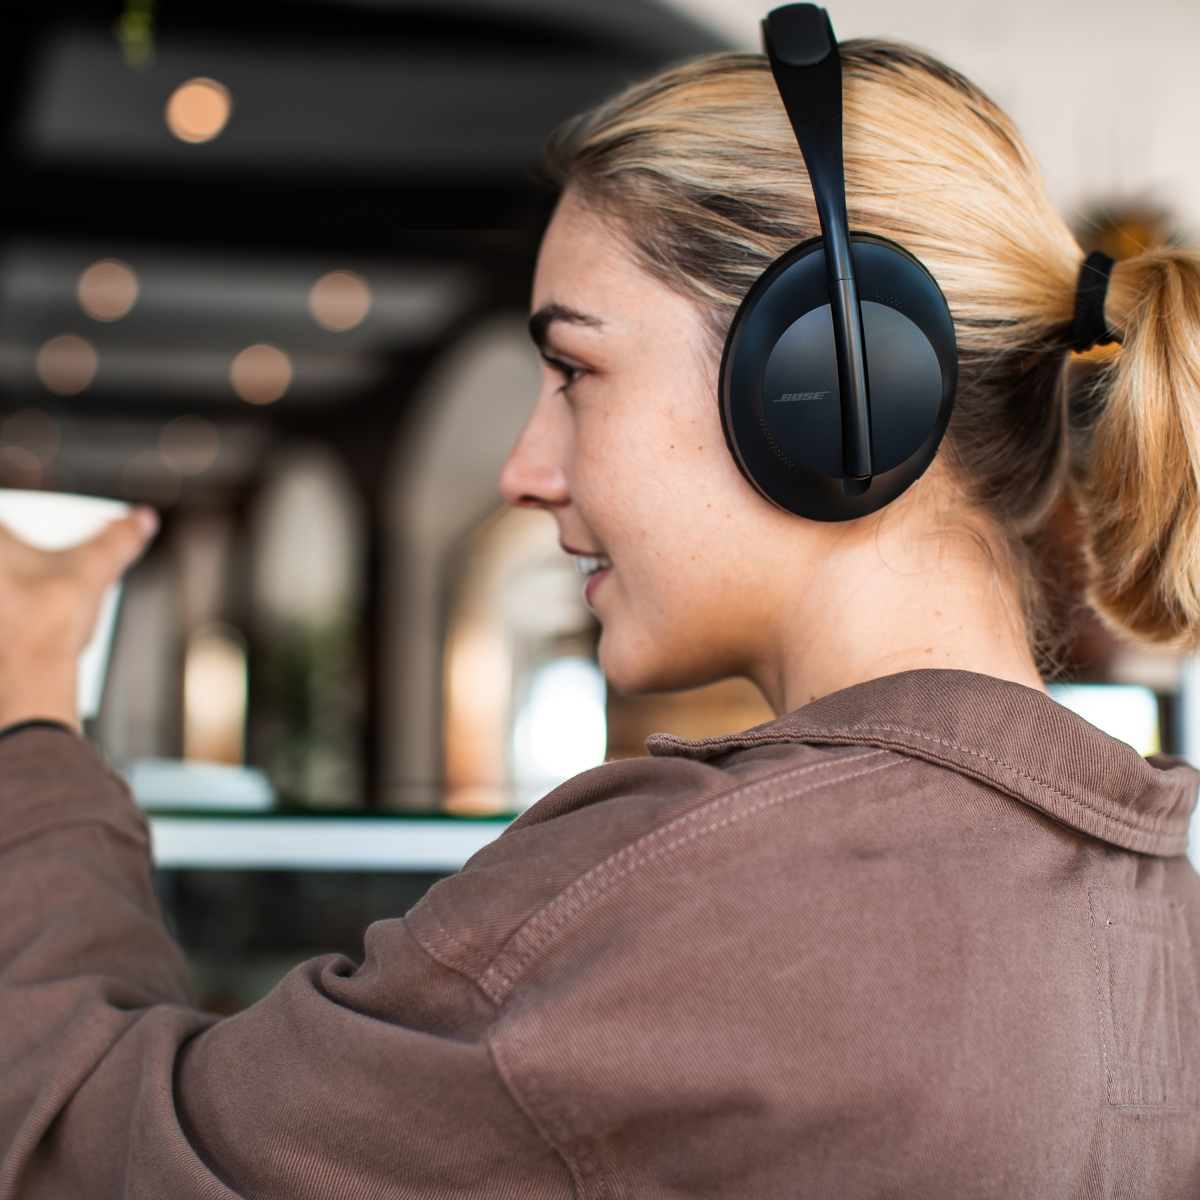 ba38db9ffe7 Bose's new Noise Cancelling Headphones 700 are based on the legendary  QuietComfort series